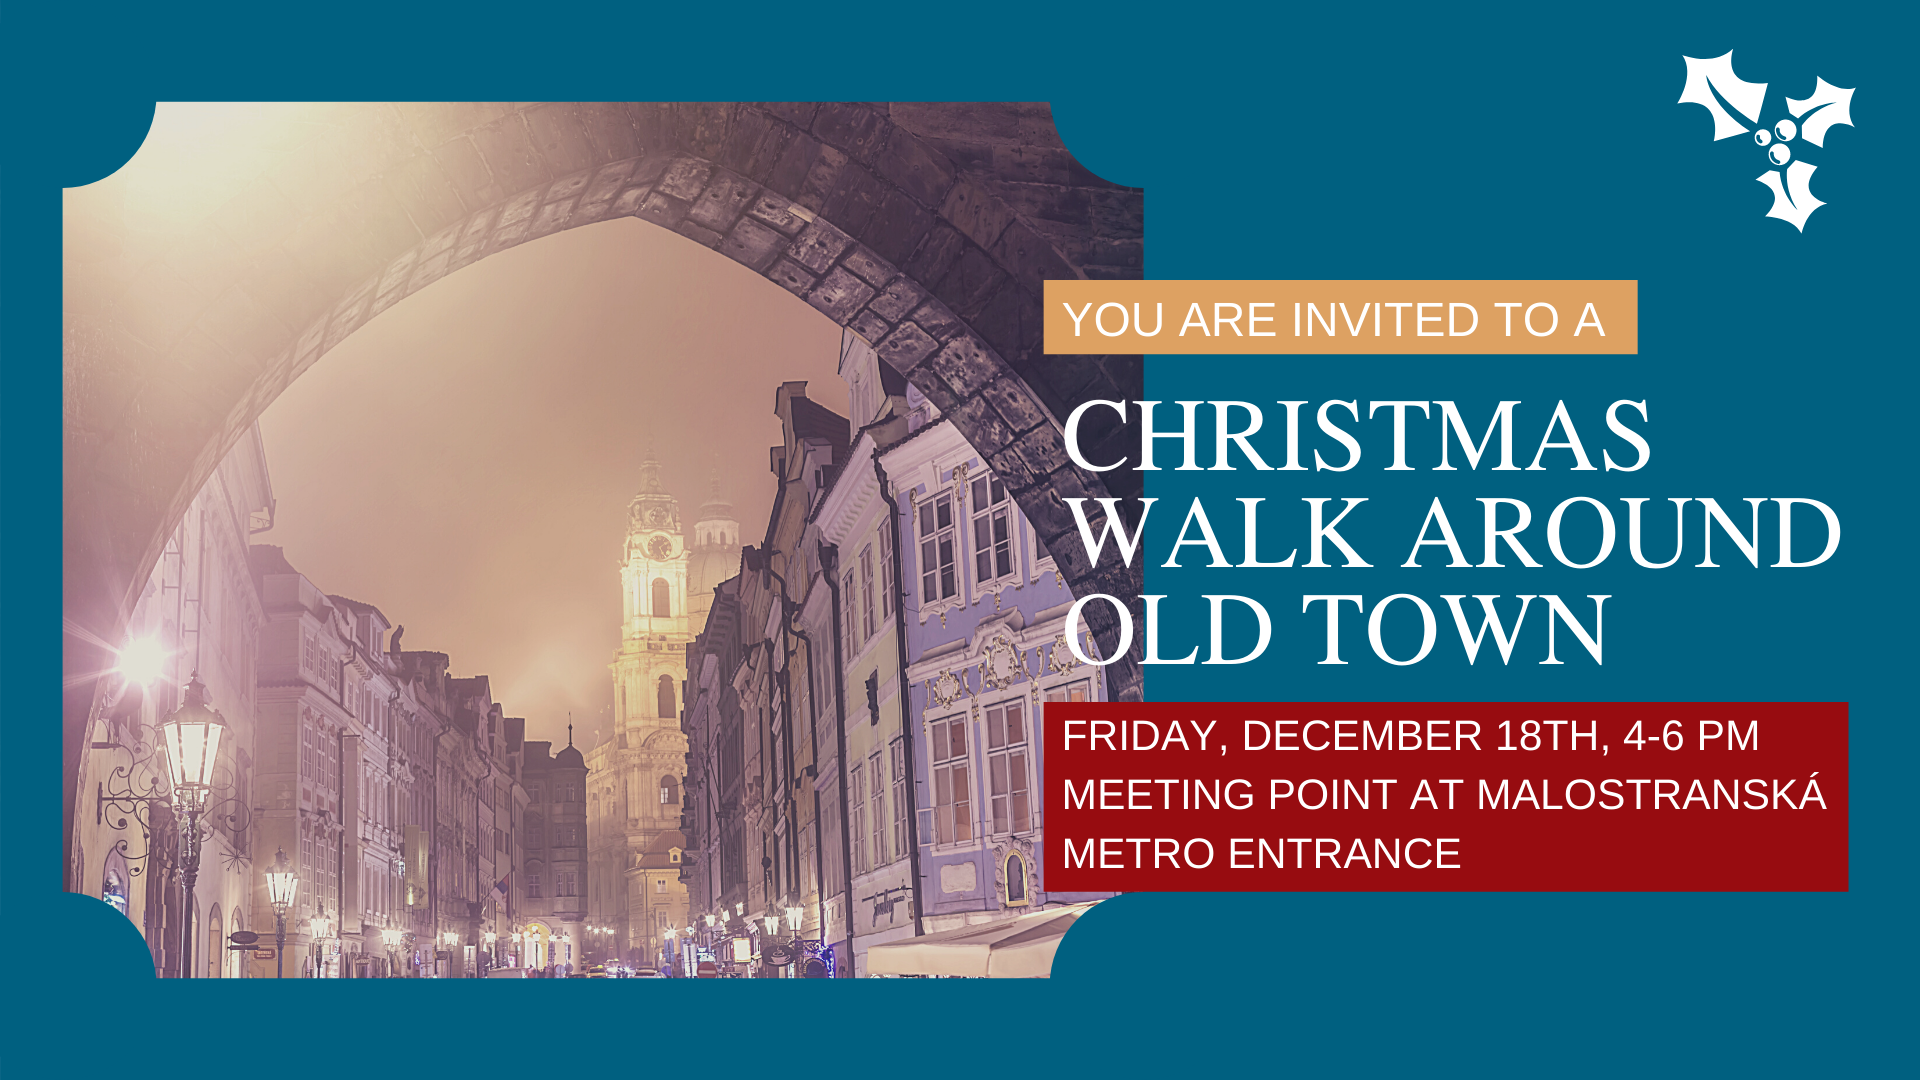 Christmas Walk around Old Town for MIMG Students